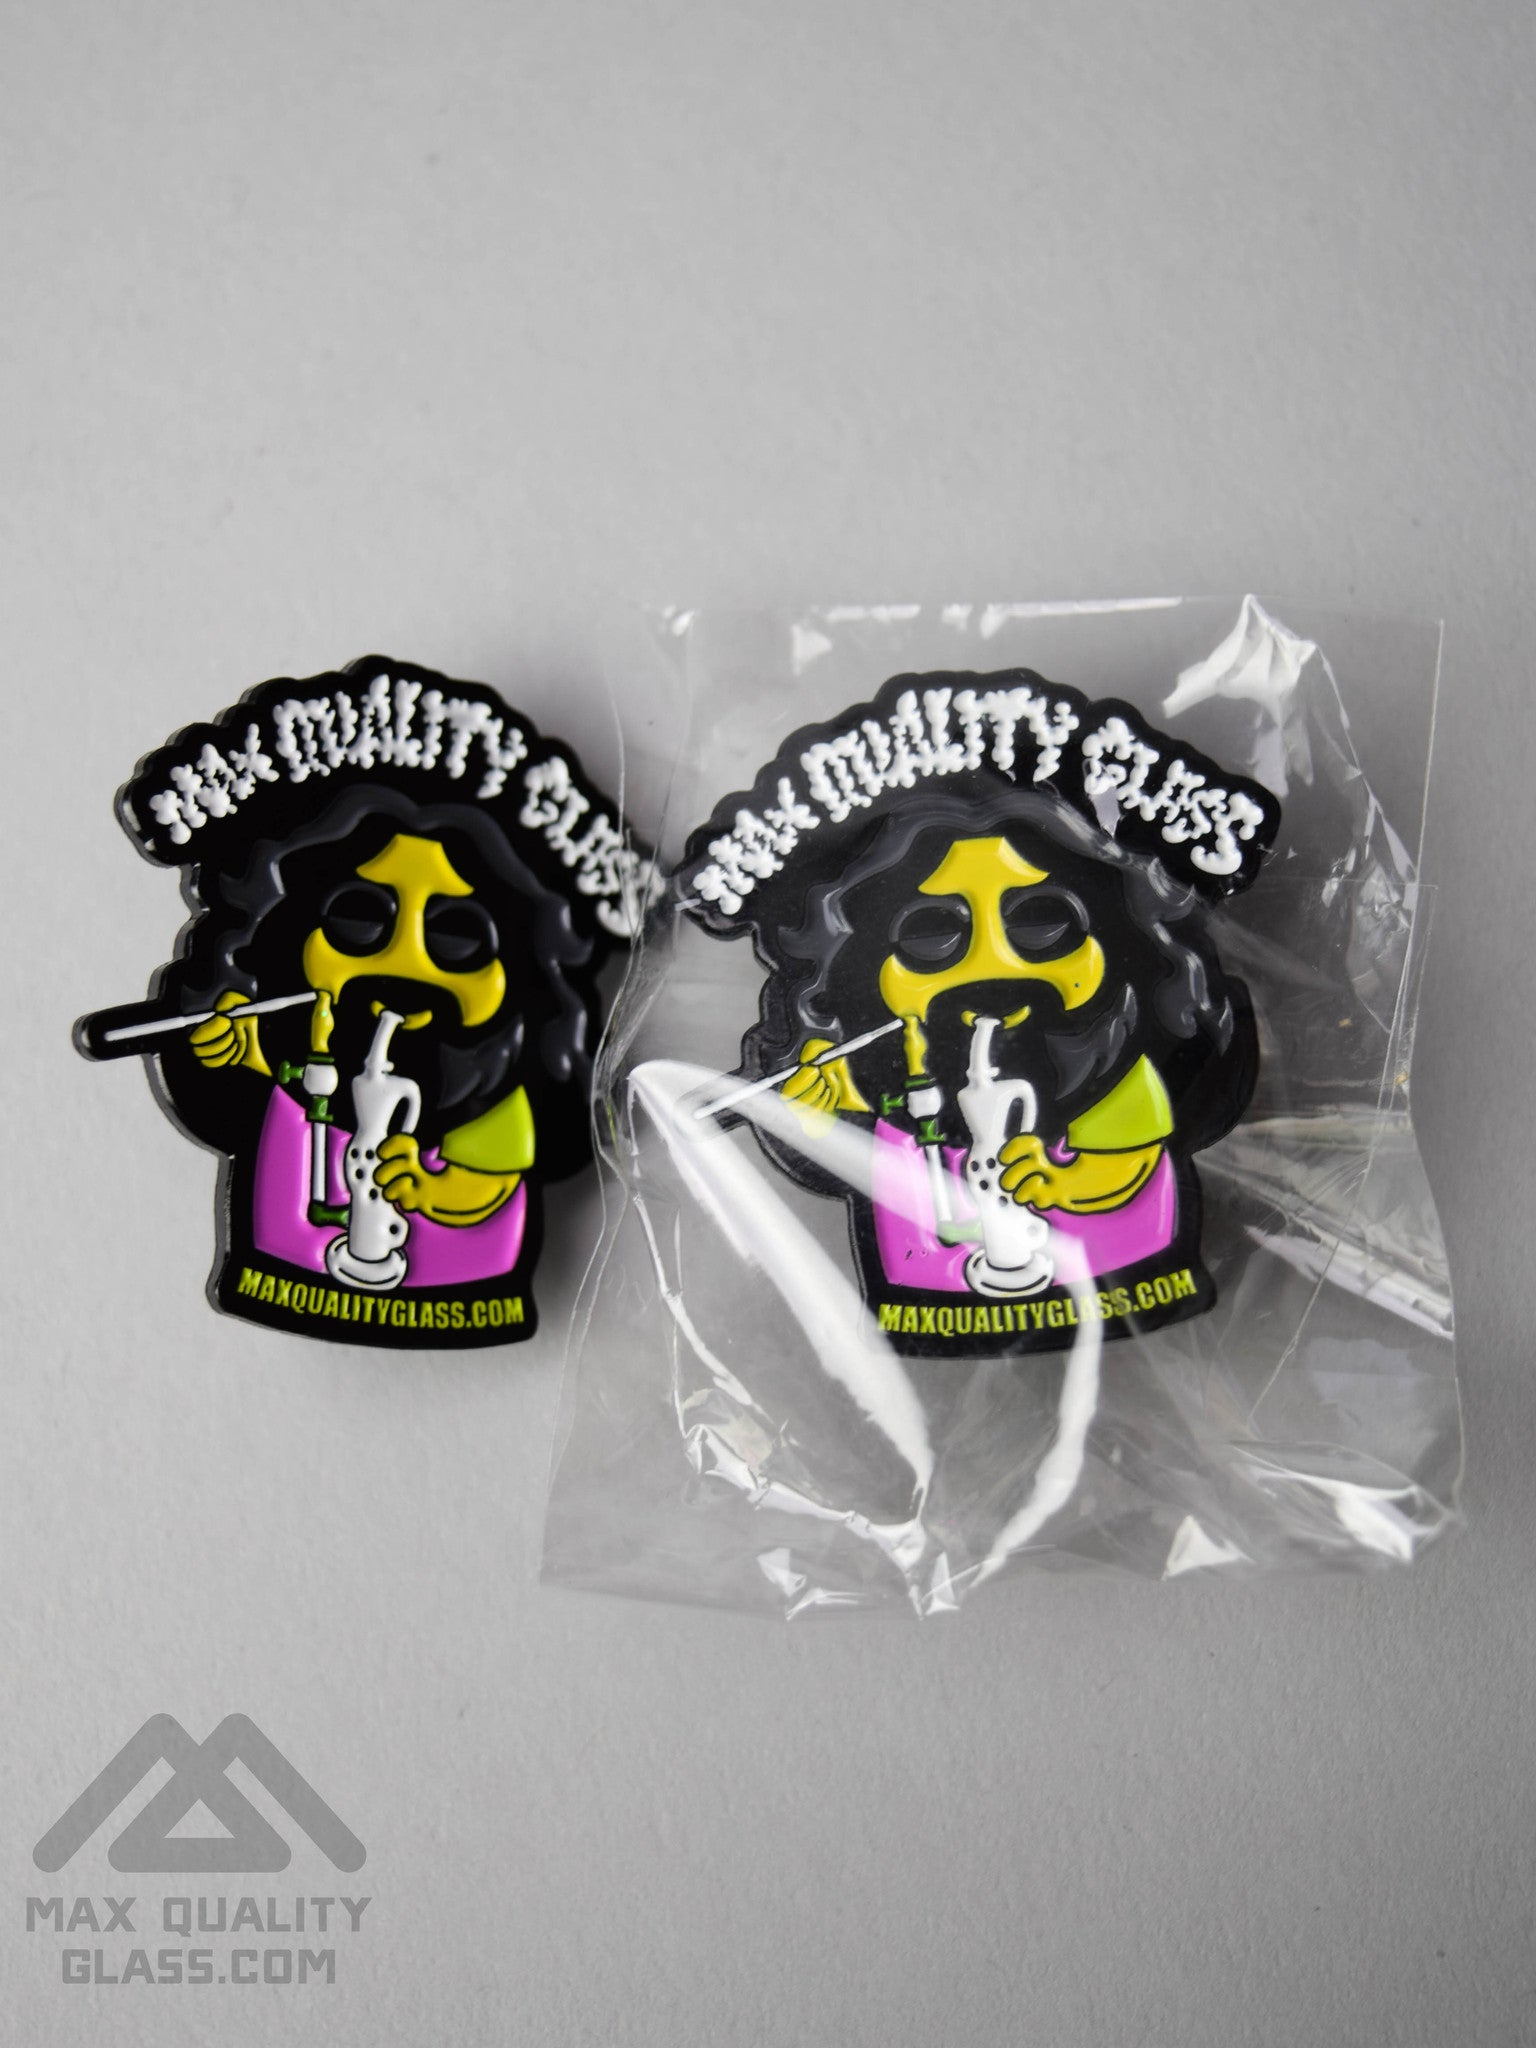 MAX QUALITY HAT PIN - Limited Edition